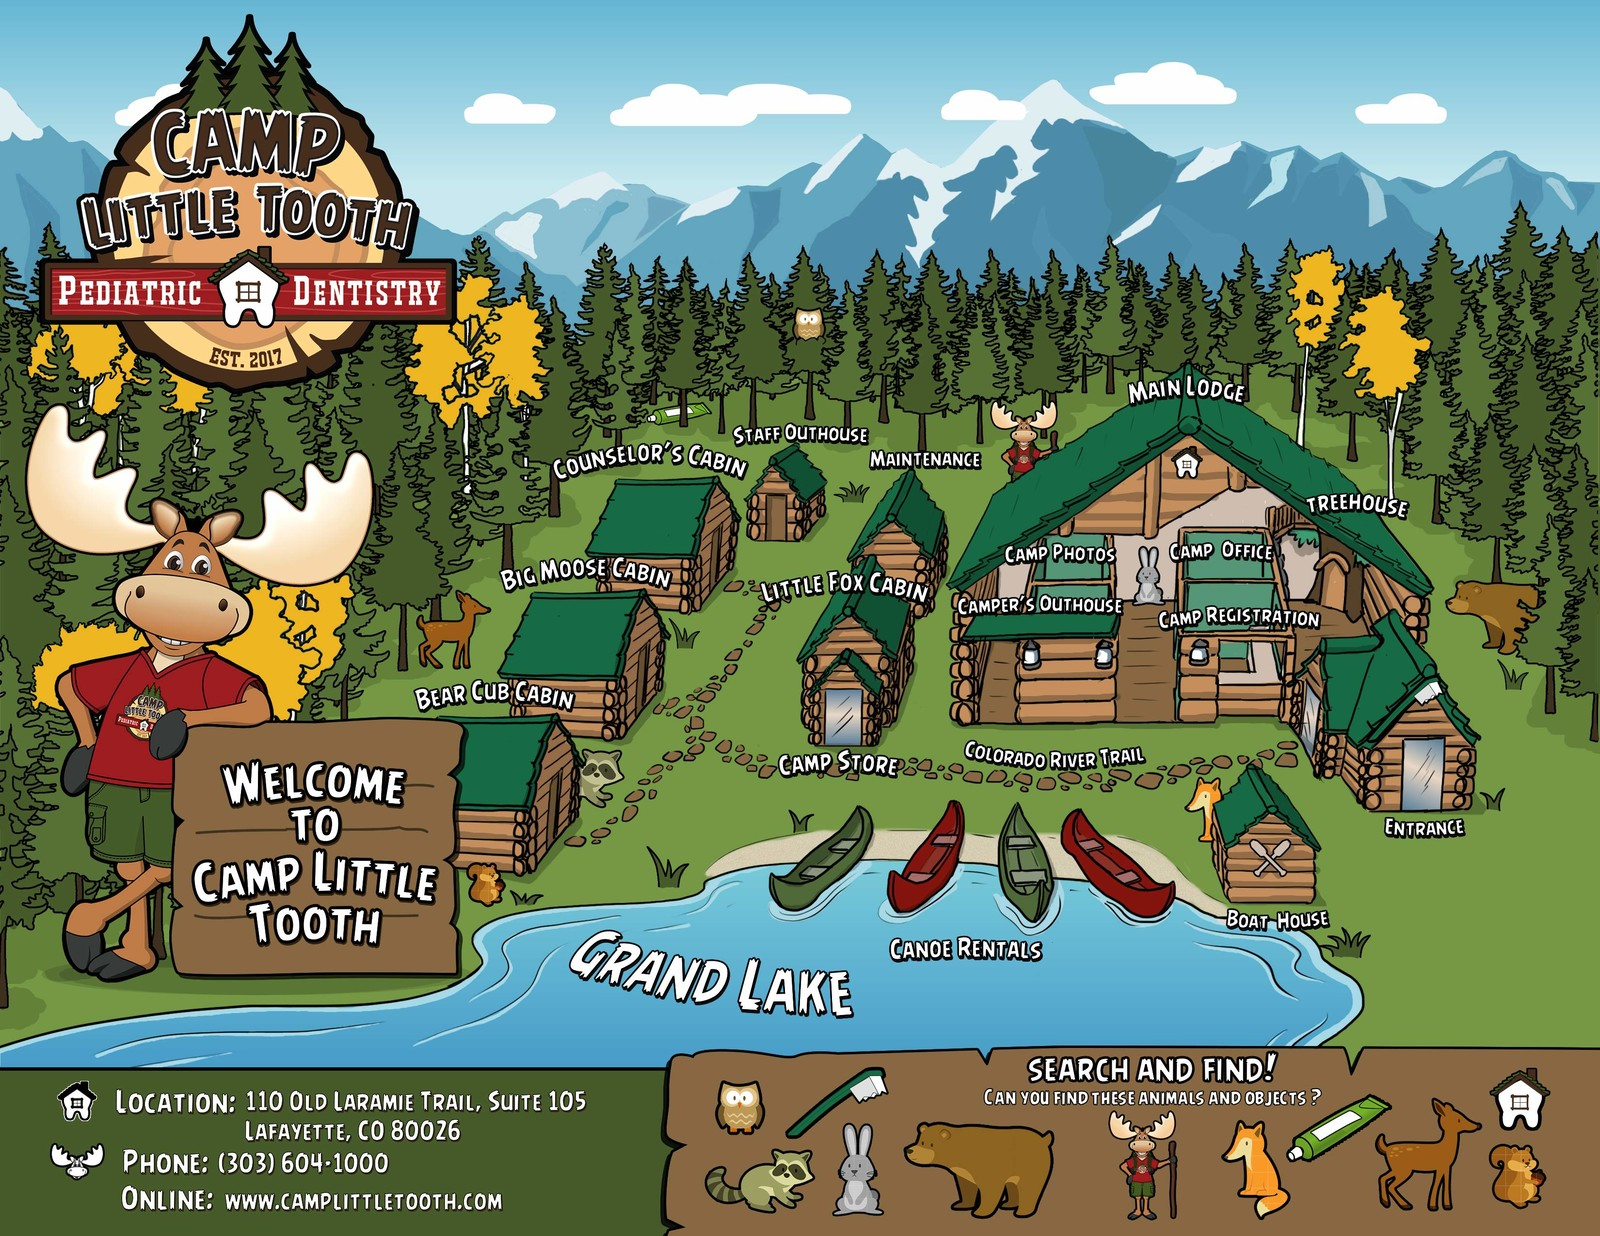 Camp Little Tooth office map